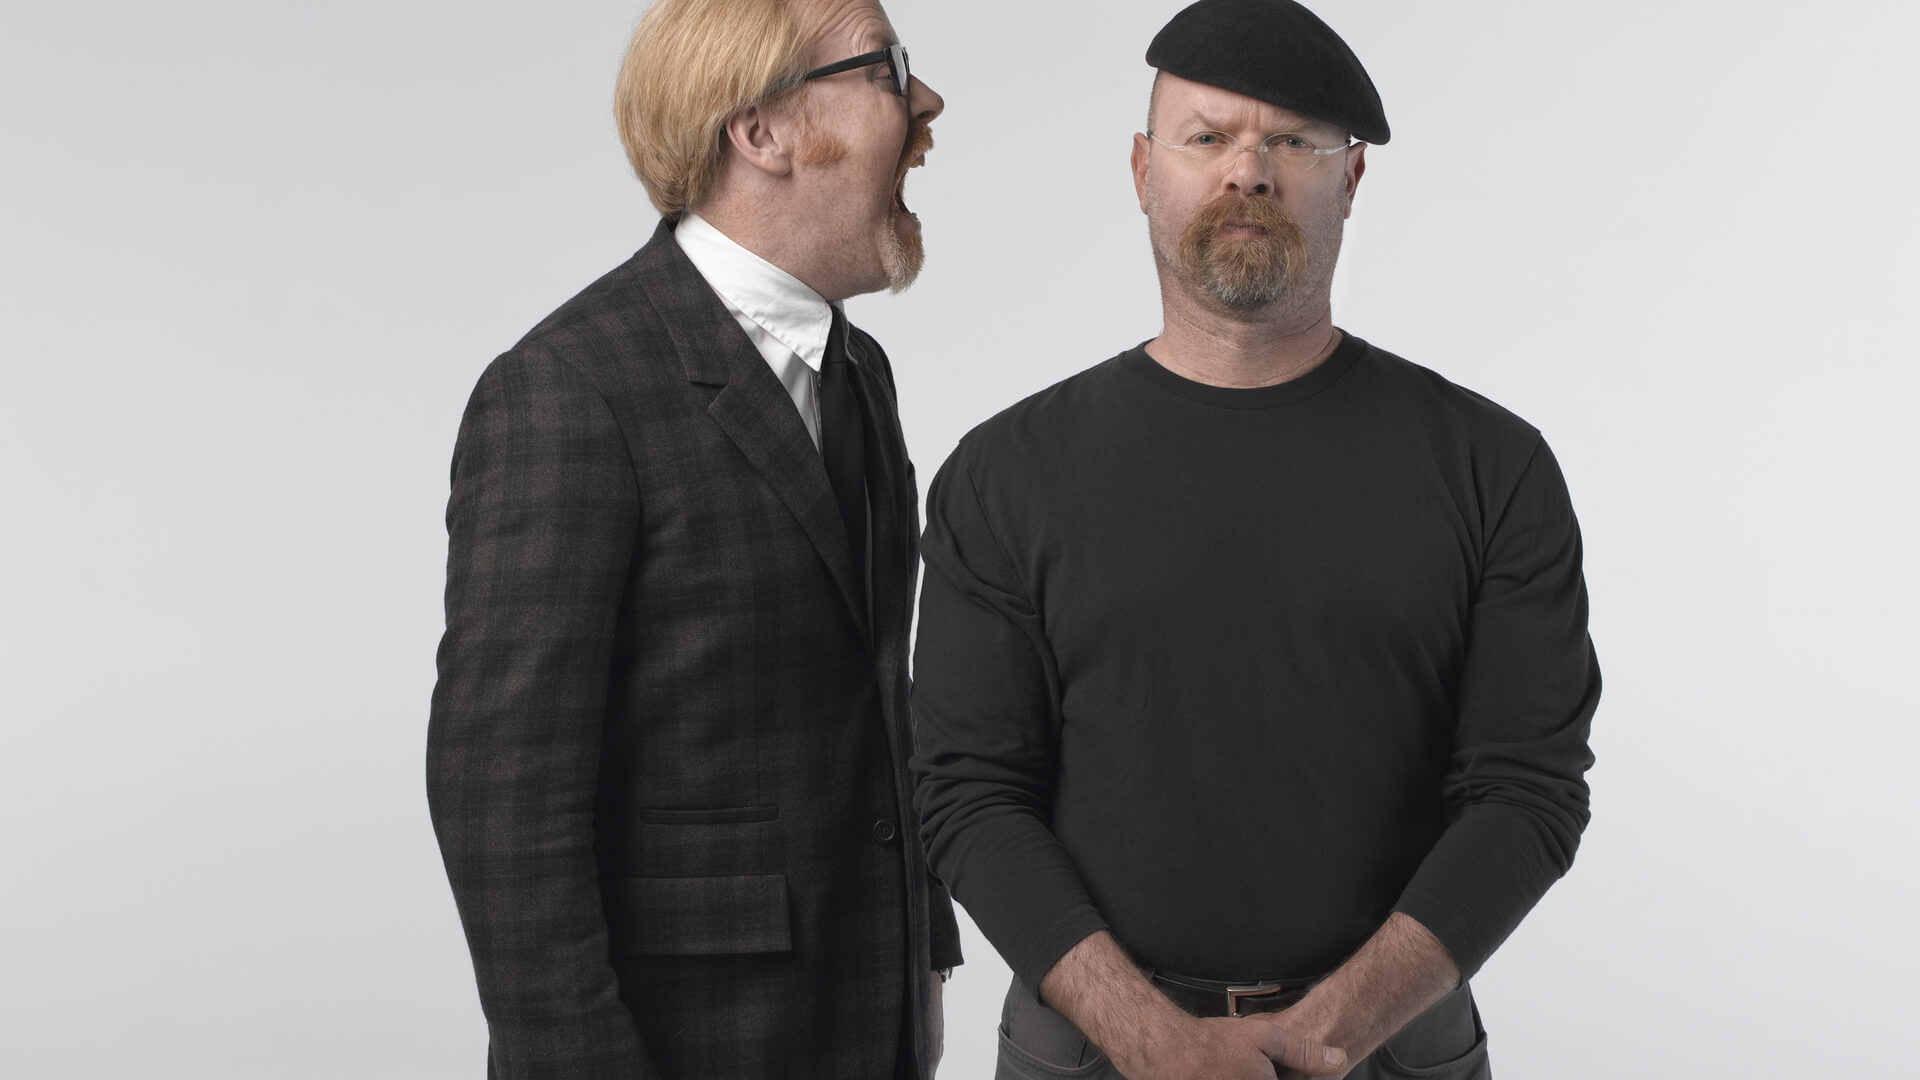 The Science Channel Is Reviving Mythbusters